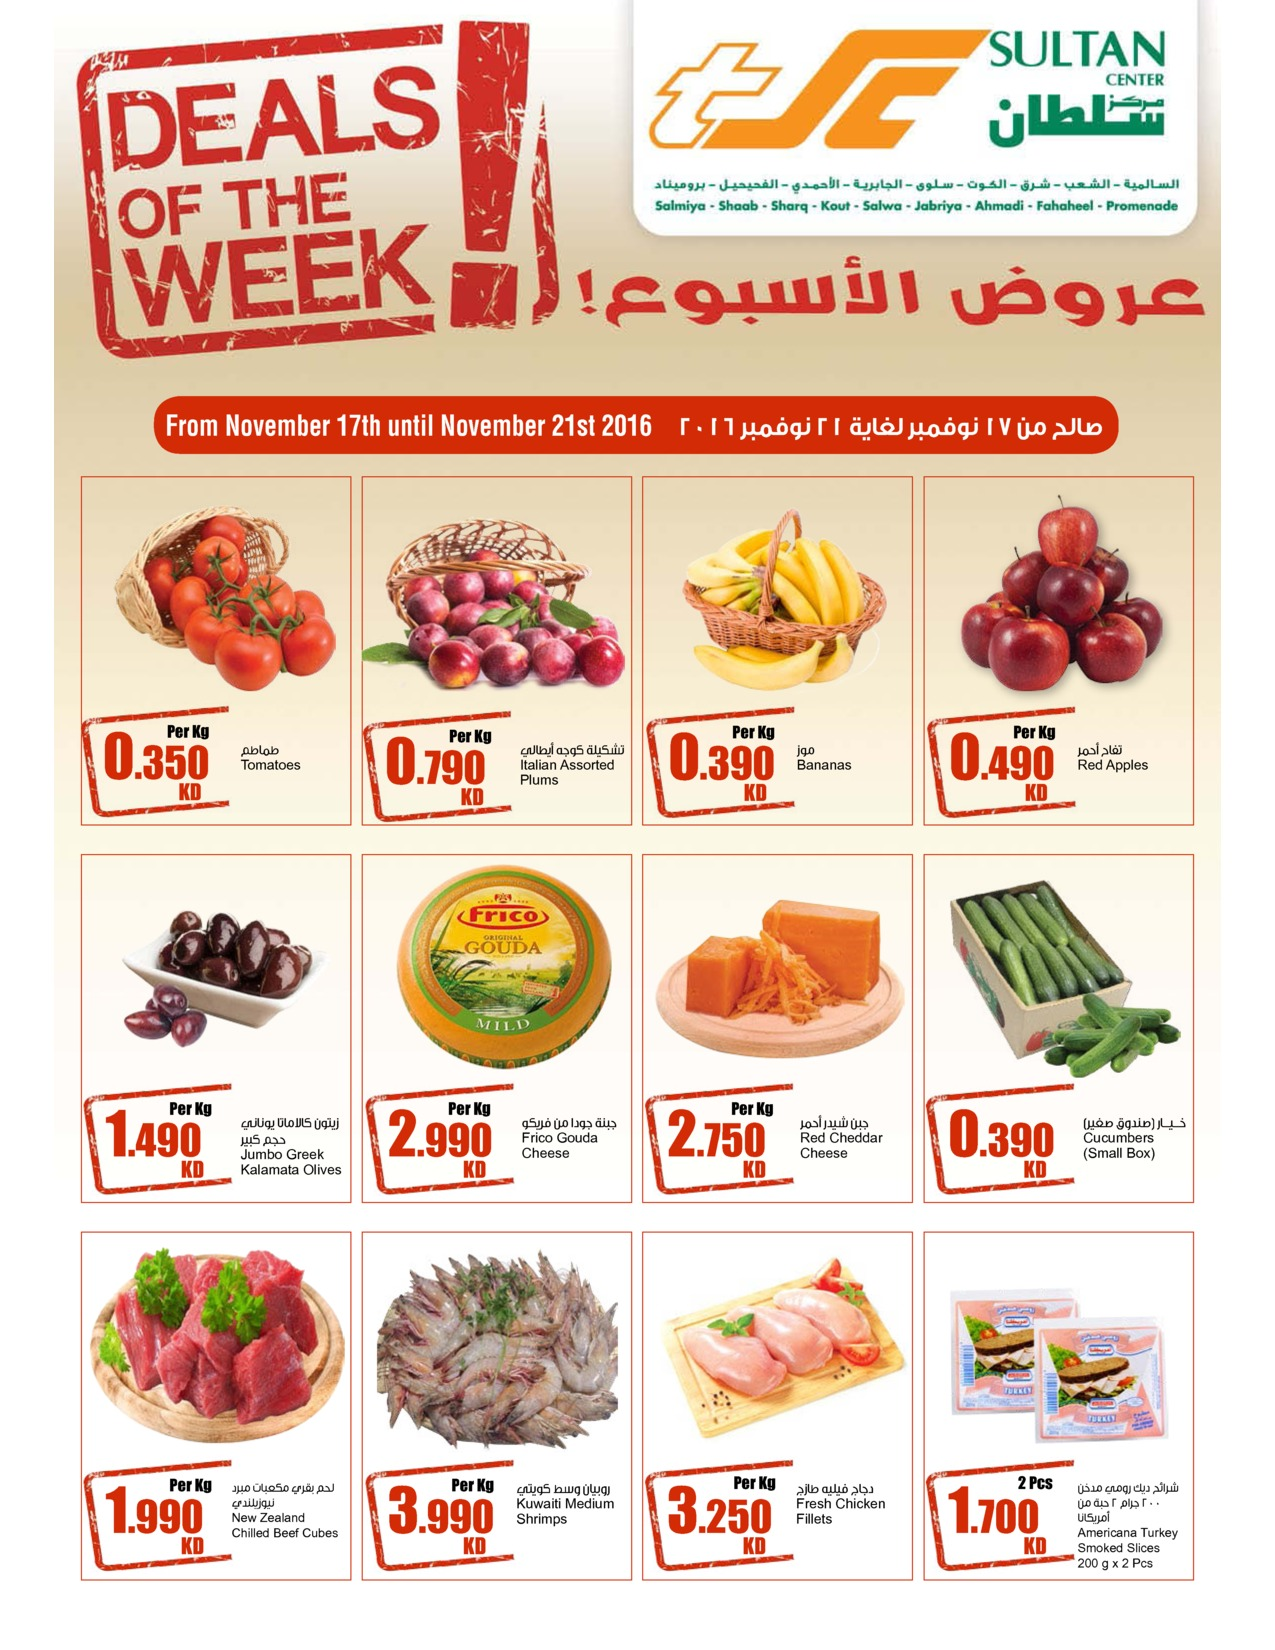 deals-of-the-week-kuwait